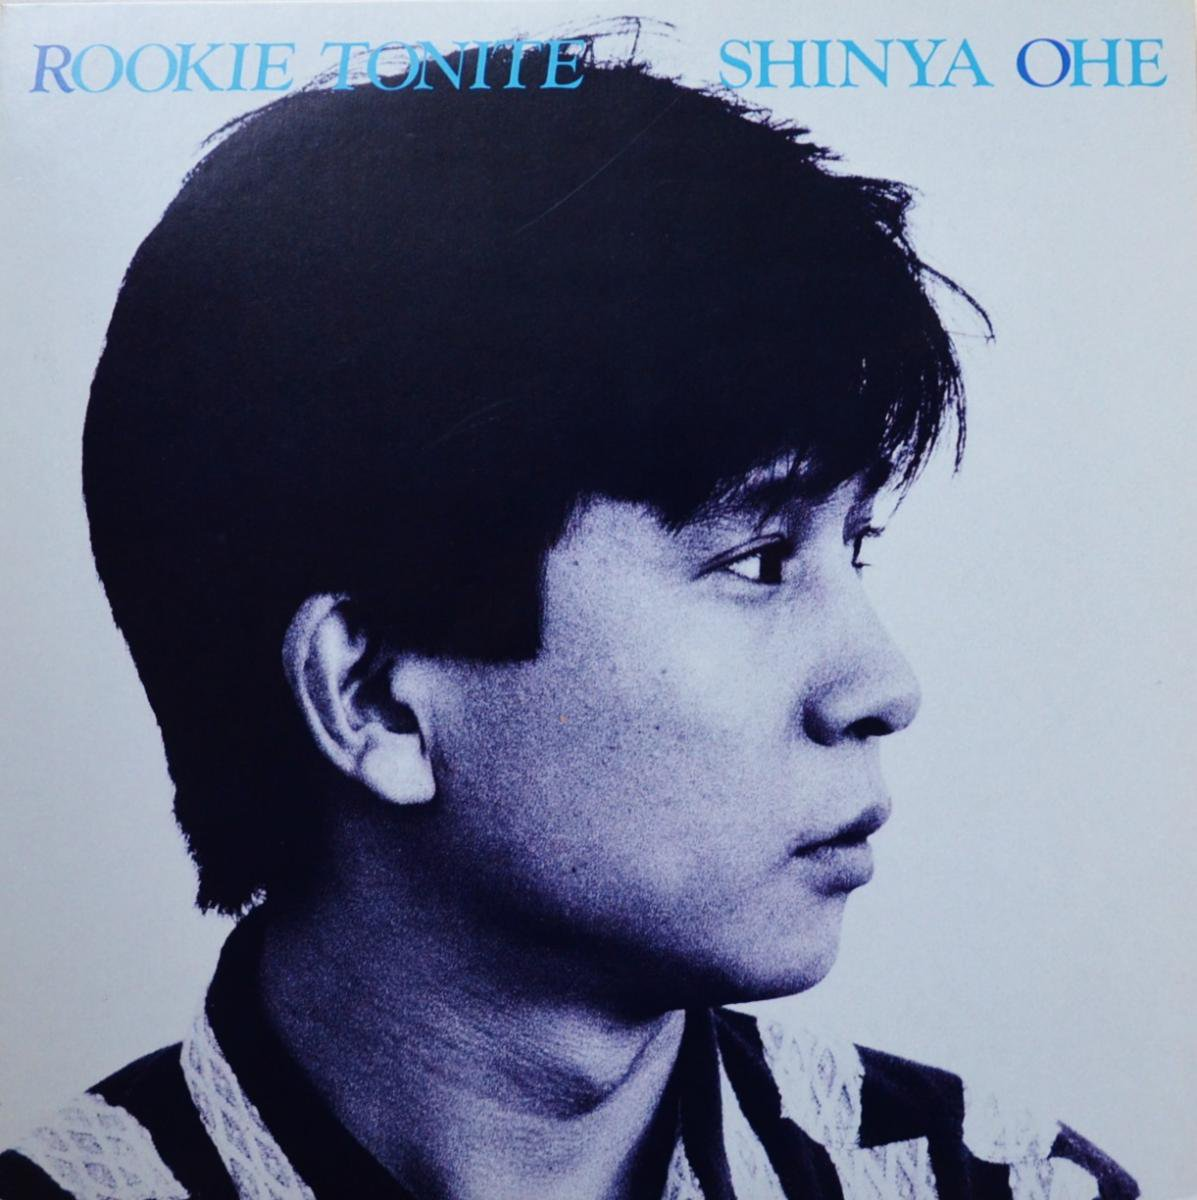 大江慎也 SHINYA OHE / ROOKIE TONITE (LP)